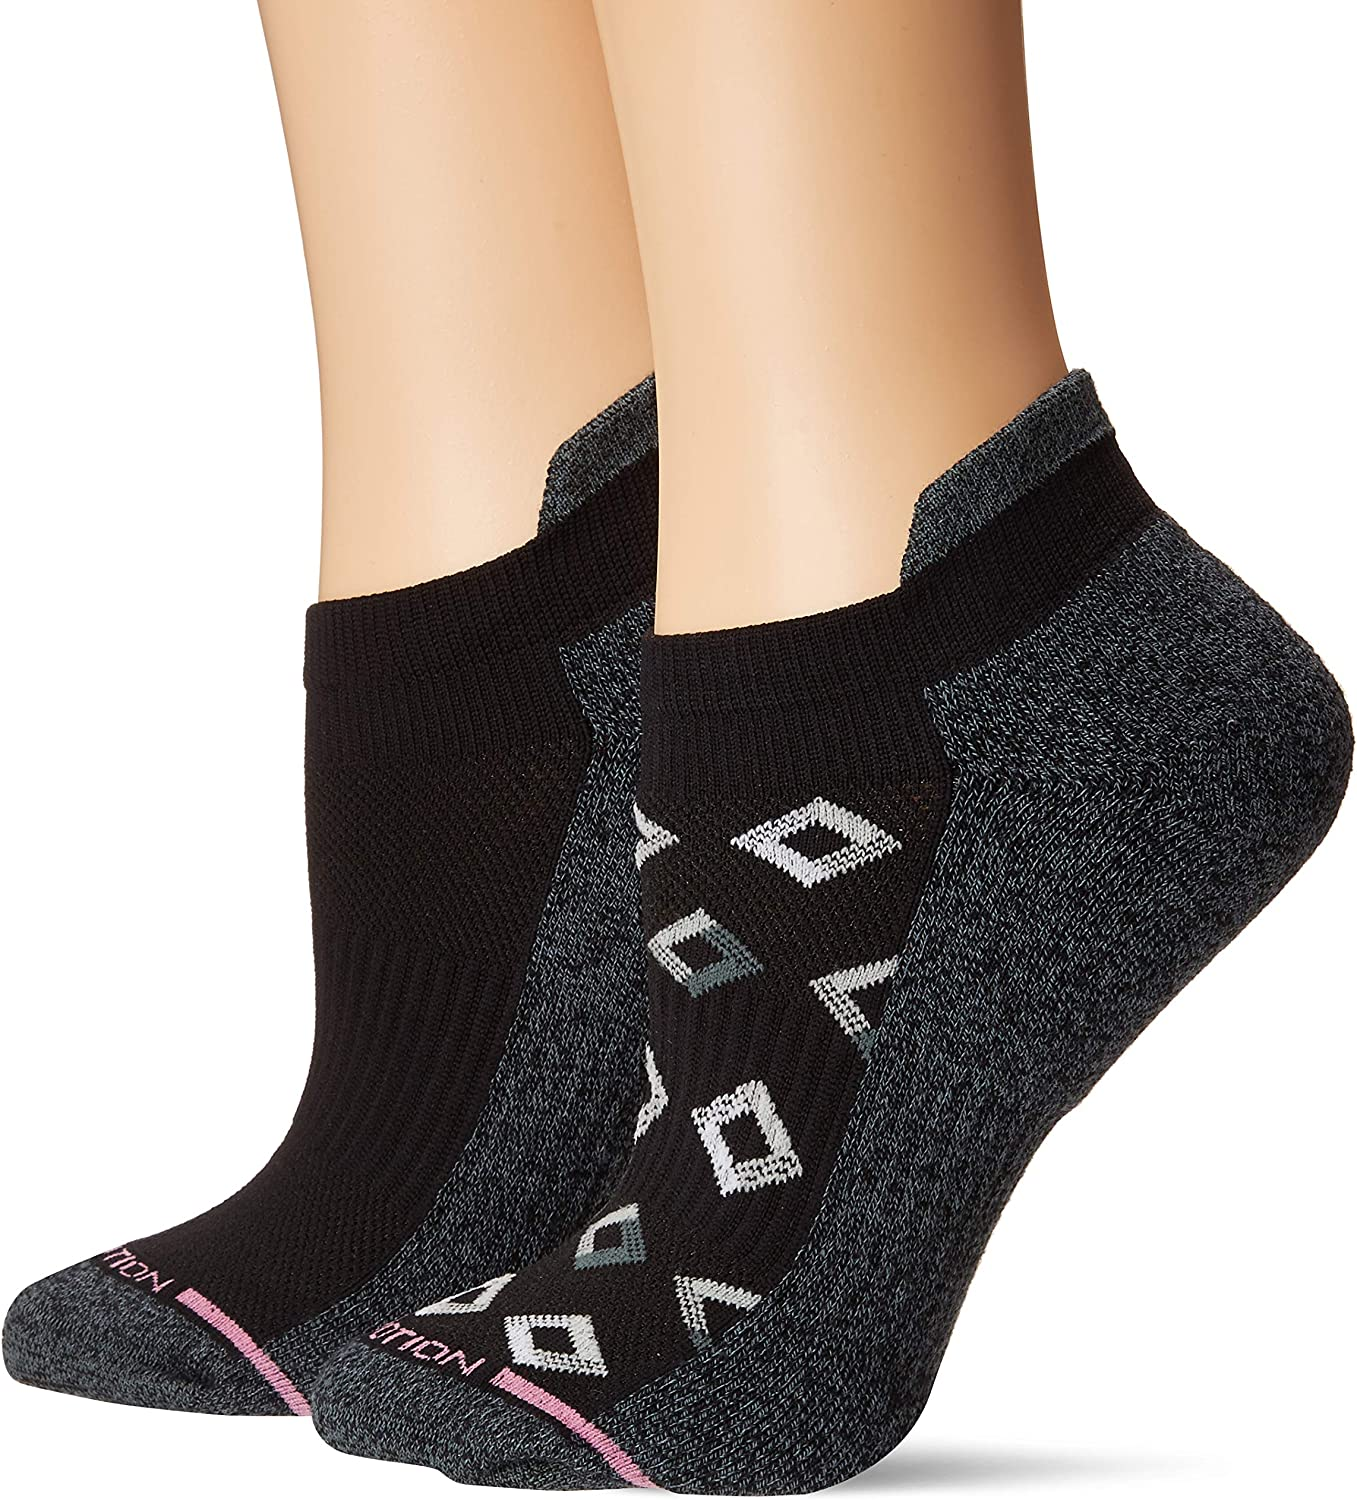 Dr Motion Womens 2pk Compression Low Cut Socks